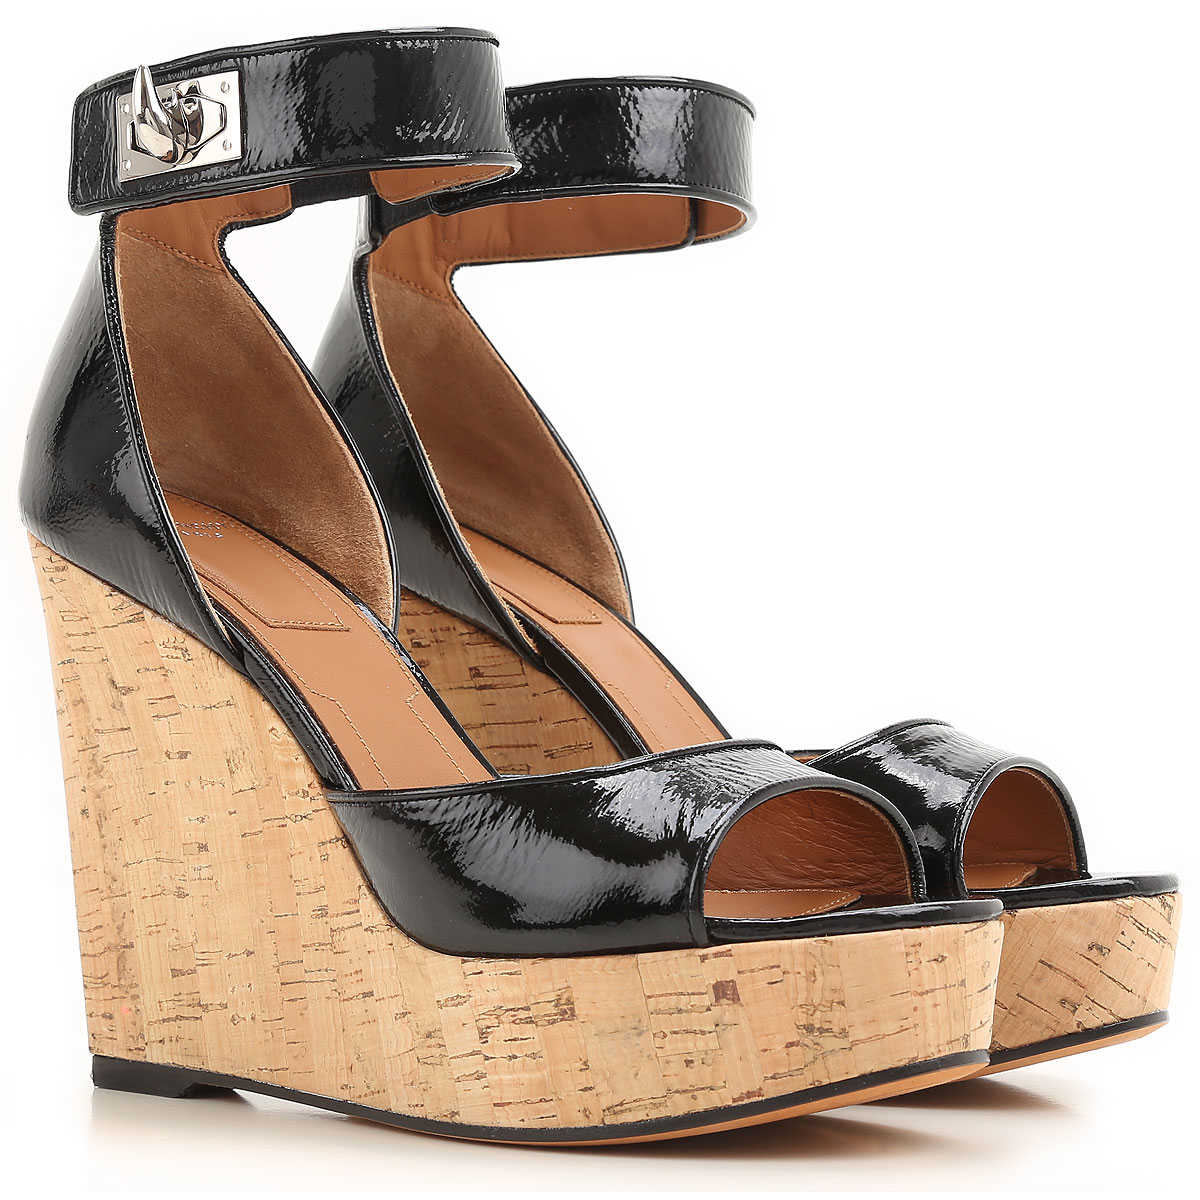 Givenchy Wedges for Women On Sale in Outlet Black - GOOFASH